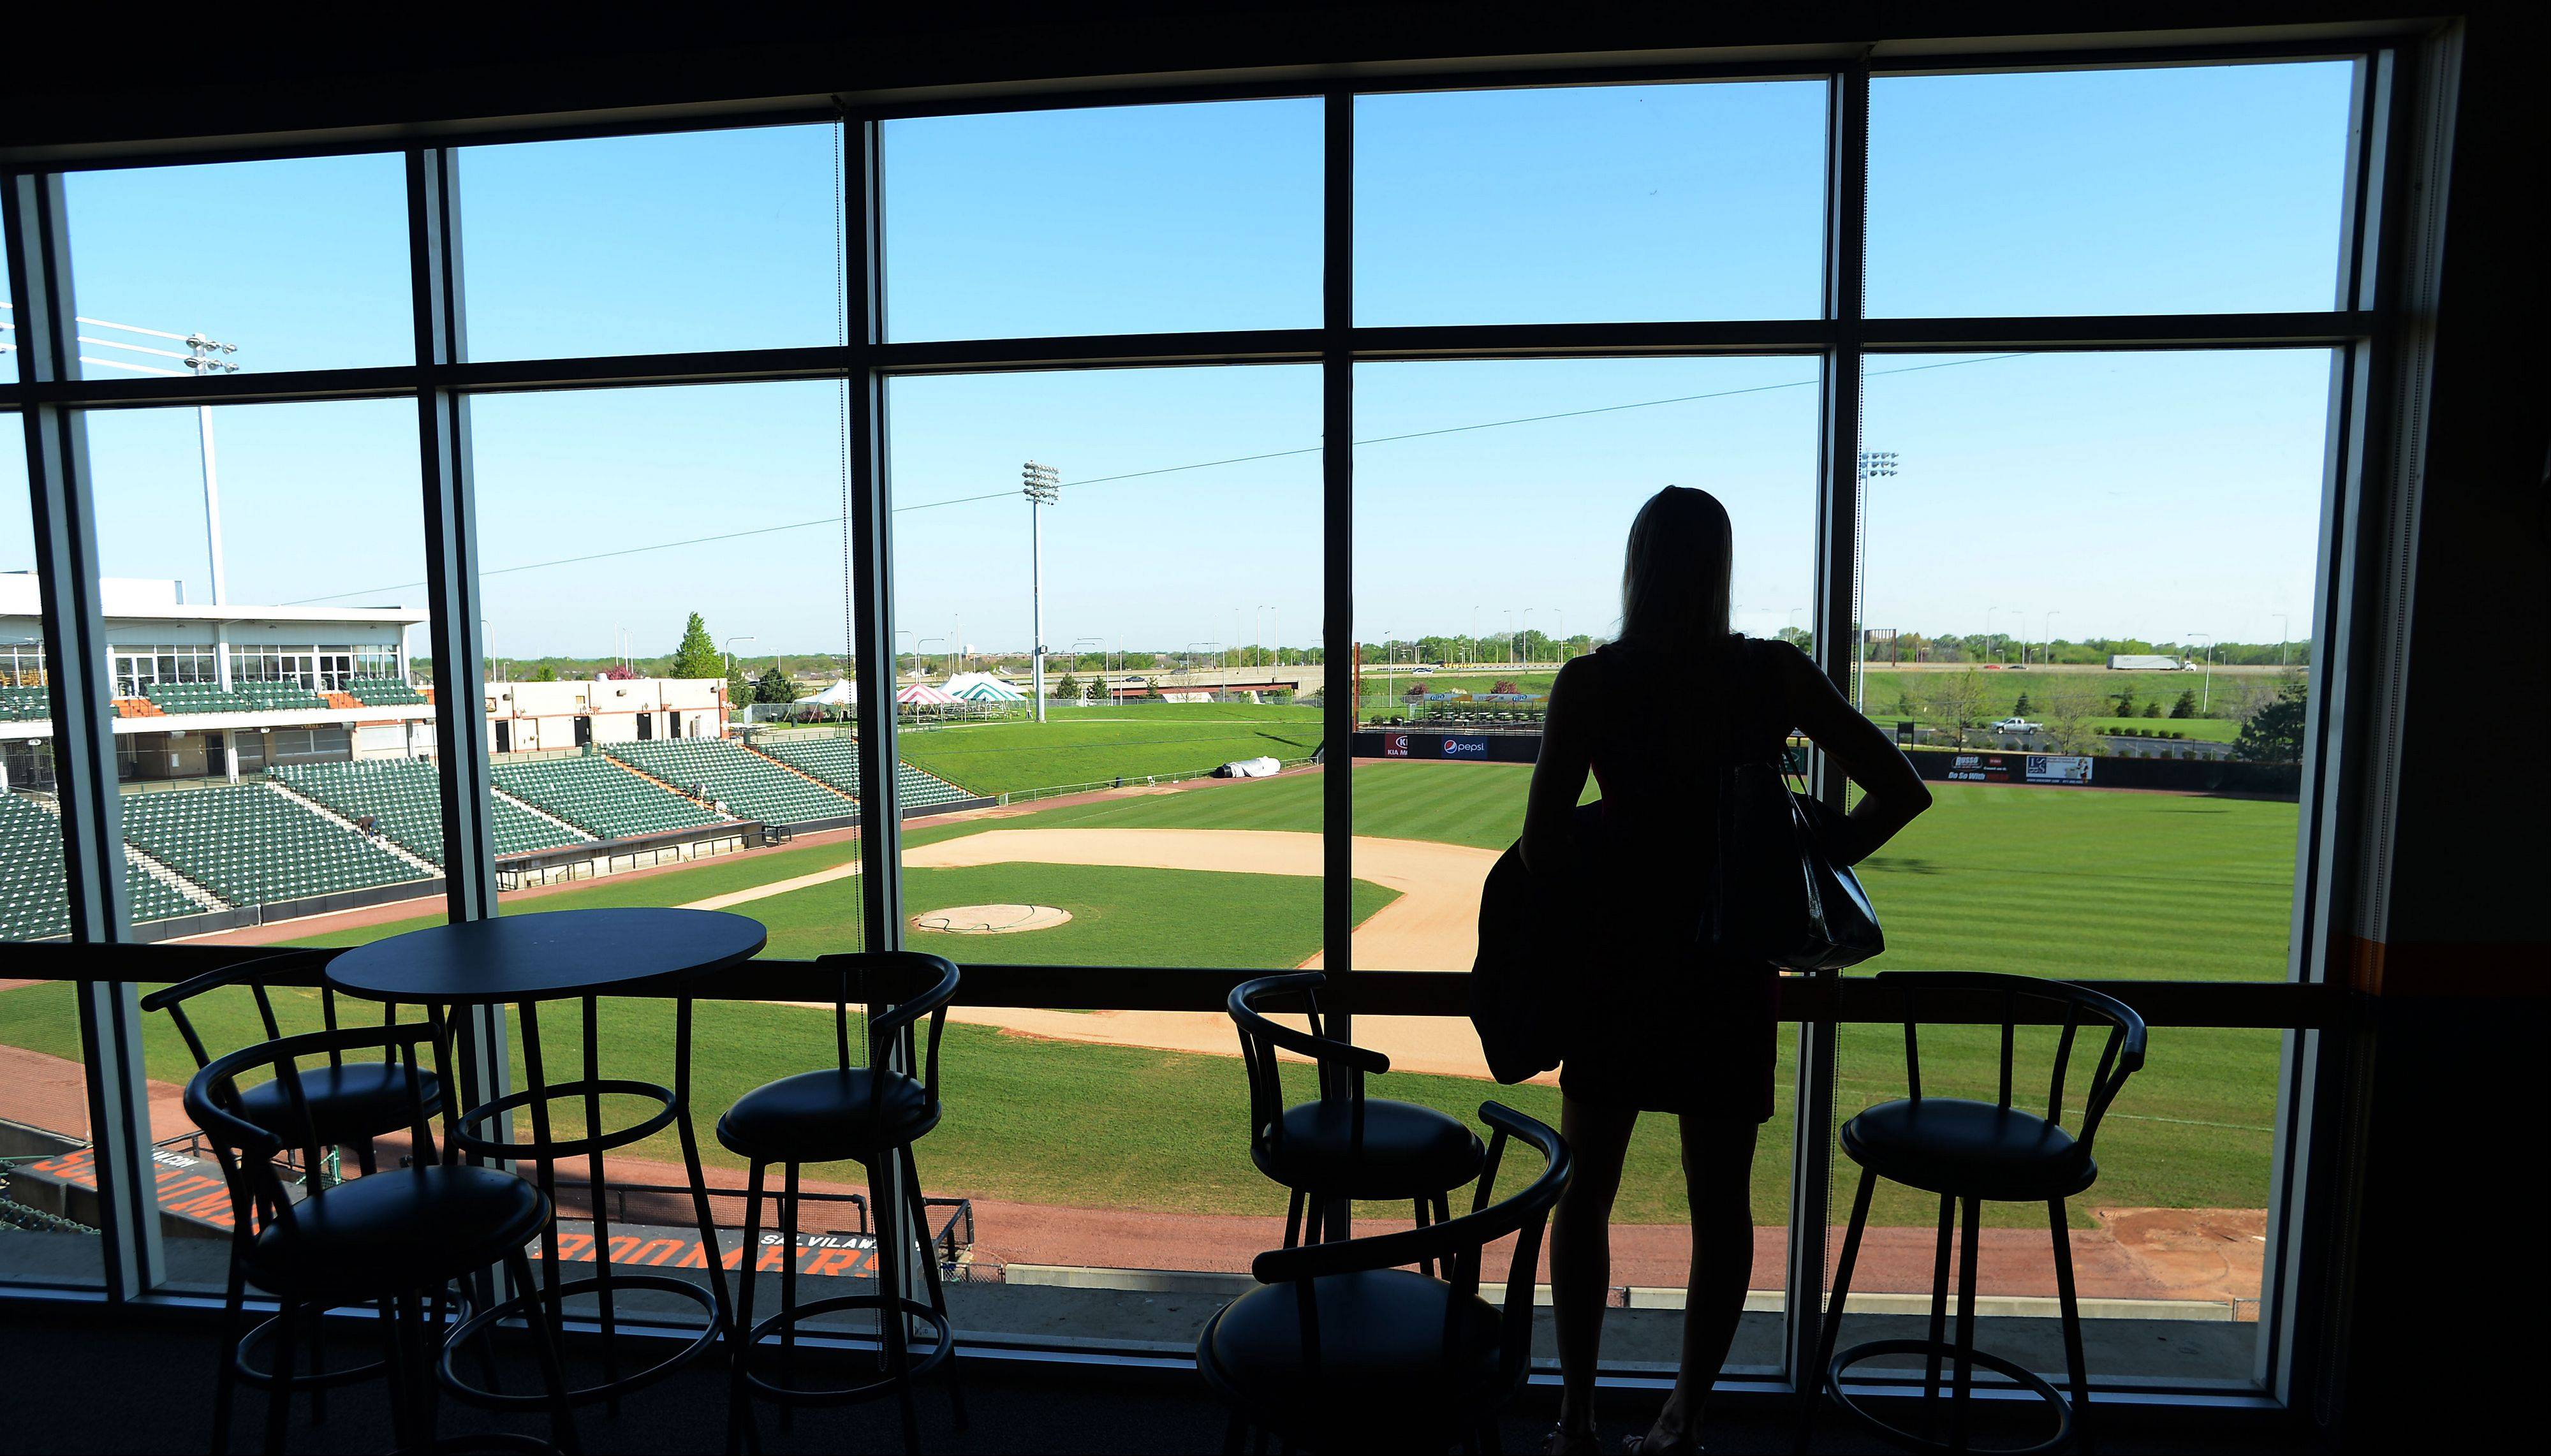 Katie Berganske of AmCheck Payroll in Schaumburg looks out on to the Schaumburg Boomers baseball field through new windows at the SBA monthly breakfast on Tuesday.